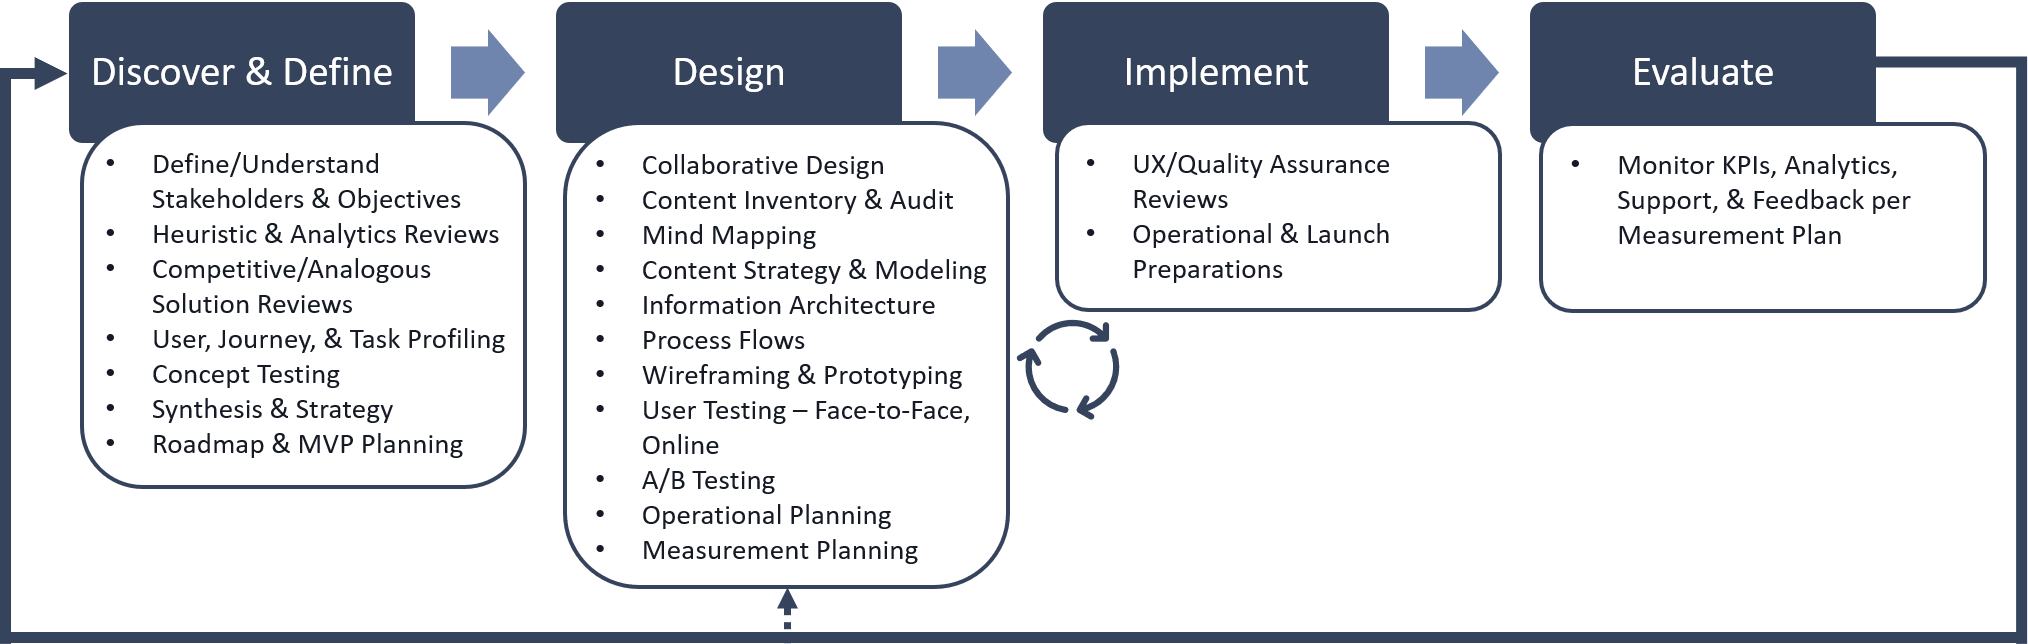 VistaPath UX Consulting Services Overview